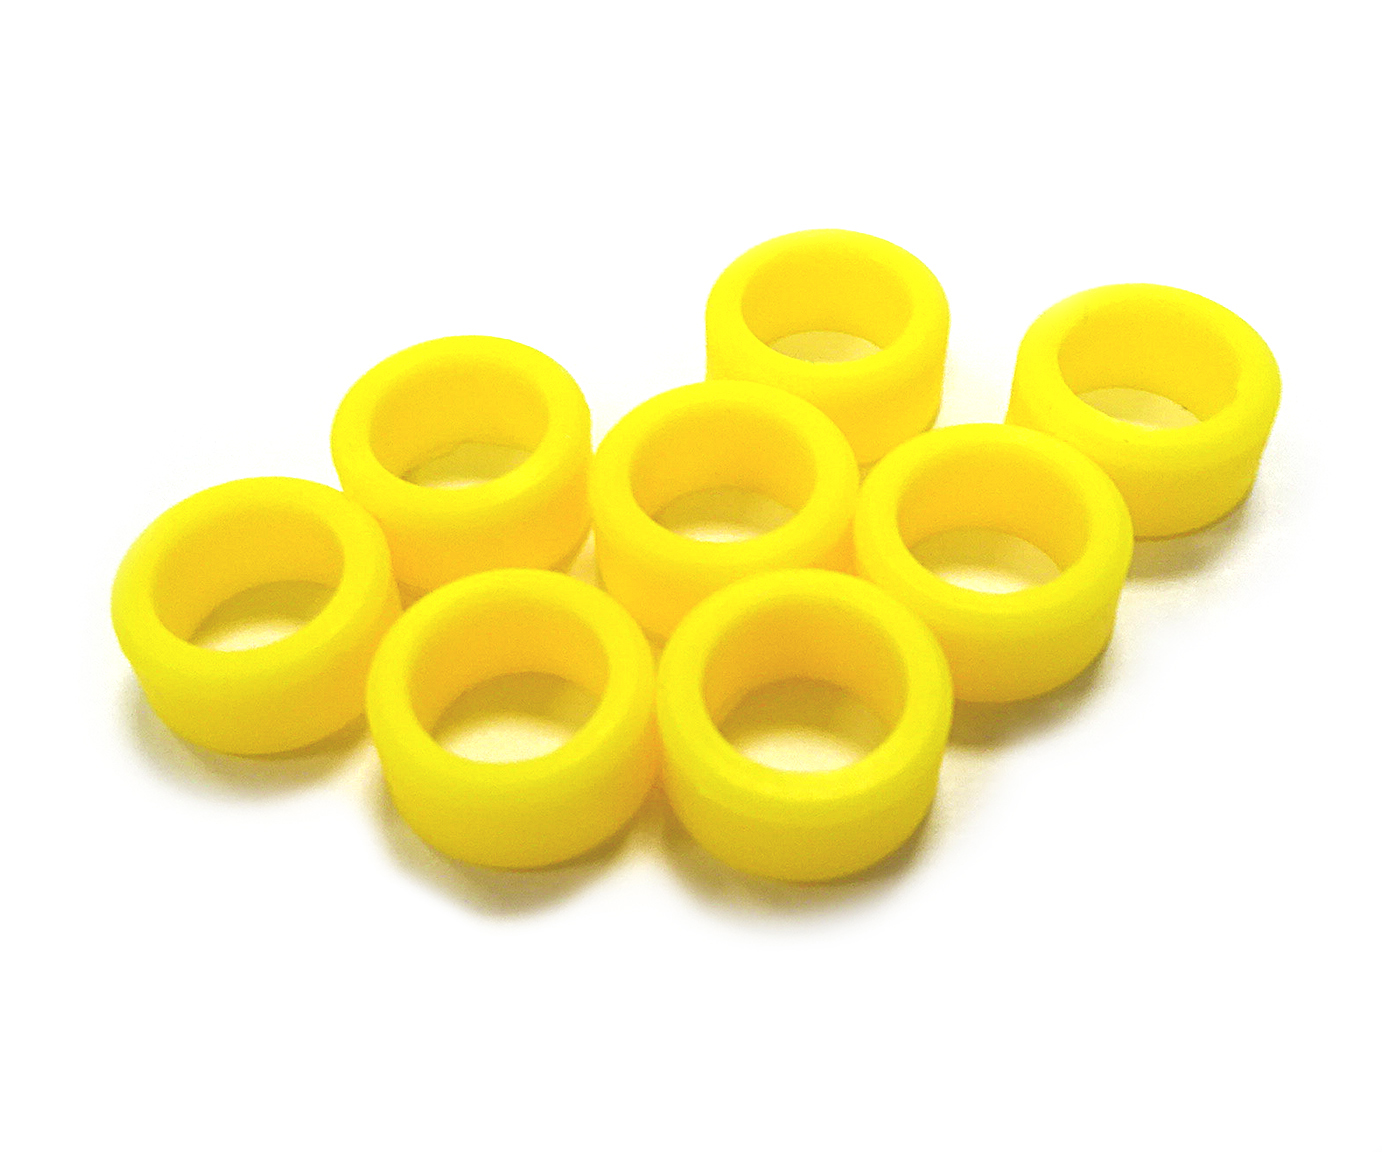 Instrument Ring - Large Yellow - 8pcs